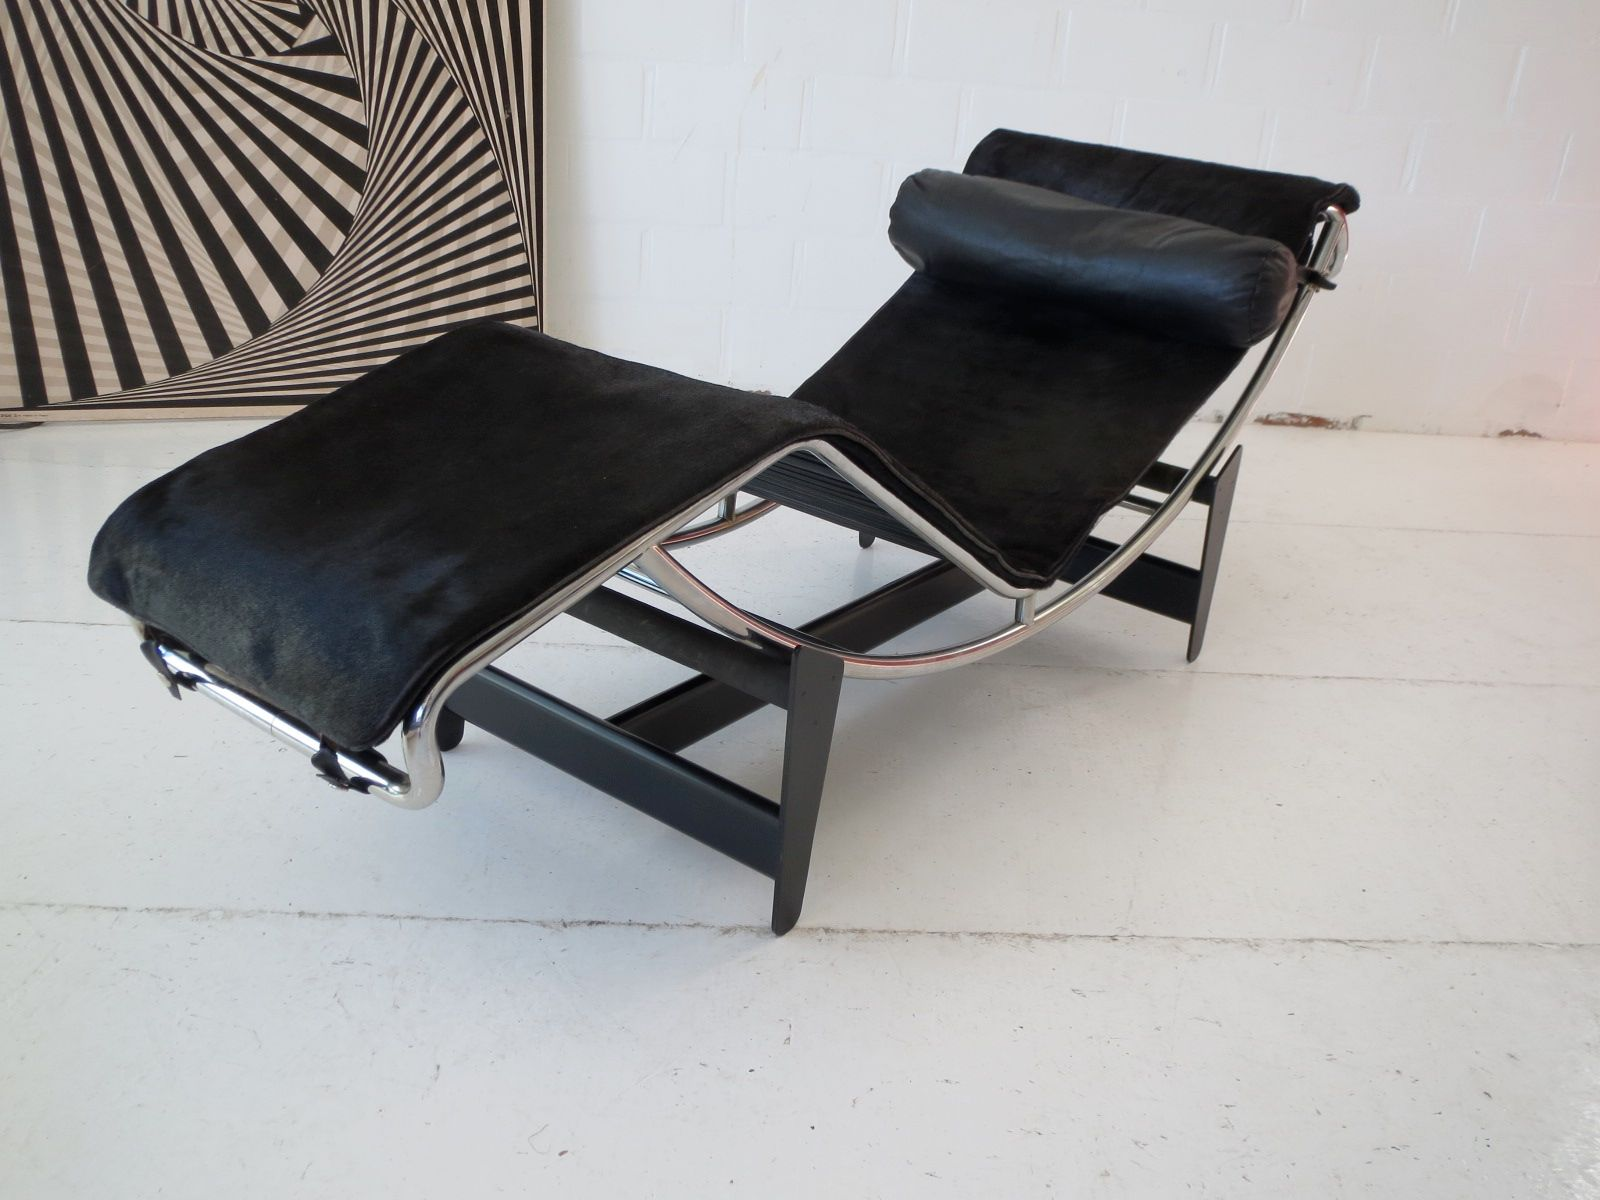 Early under 750 numbered lc4 chaise longue by le for Chaise longue le corbusier precio